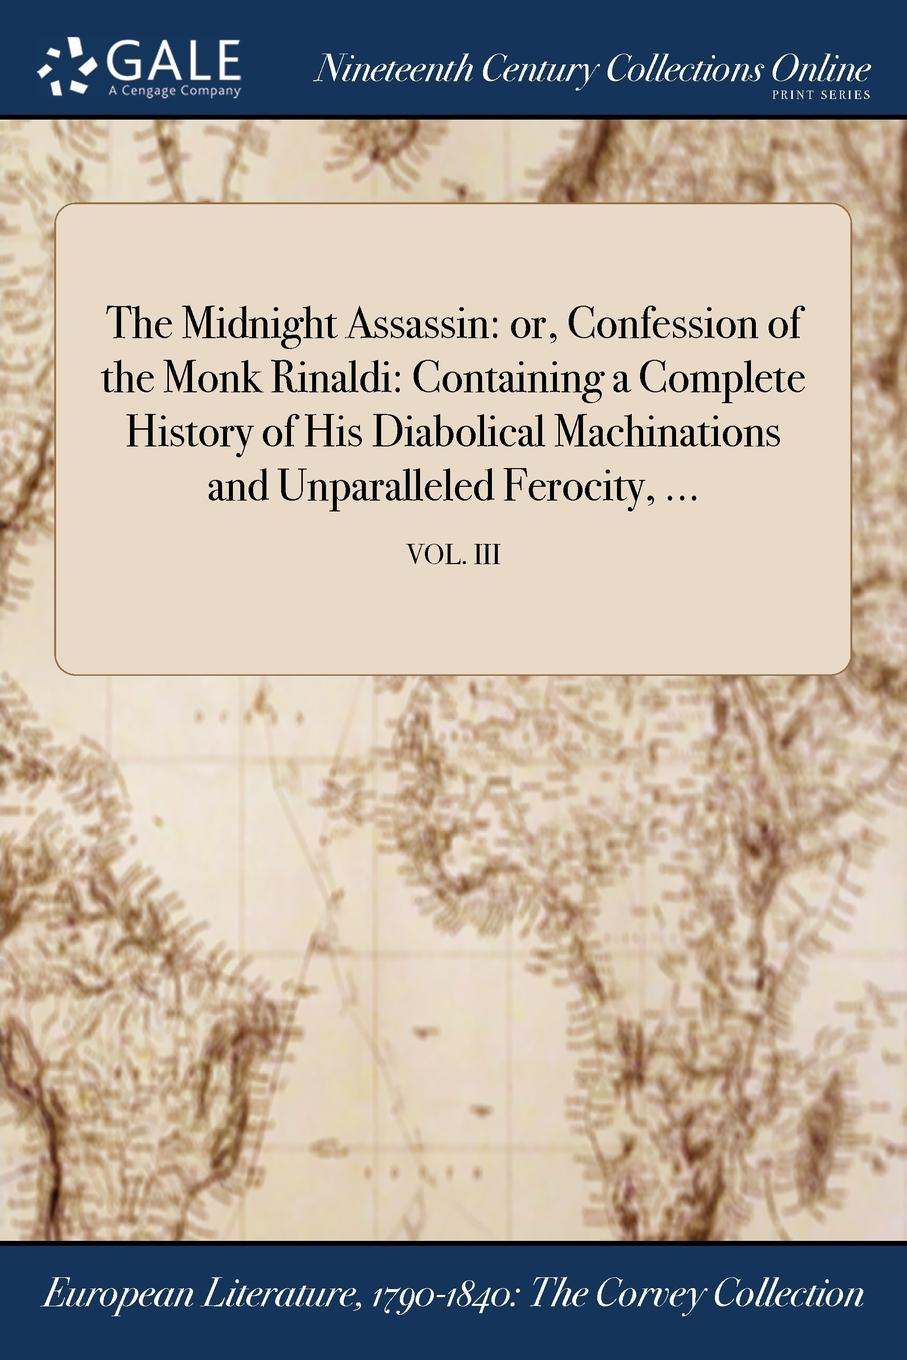 M. l'abbé Trochon The Midnight Assassin. or, Confession of the Monk Rinaldi: Containing a Complete History of His Diabolical Machinations and Unparalleled Ferocity, ...; VOL. III the complete short novels